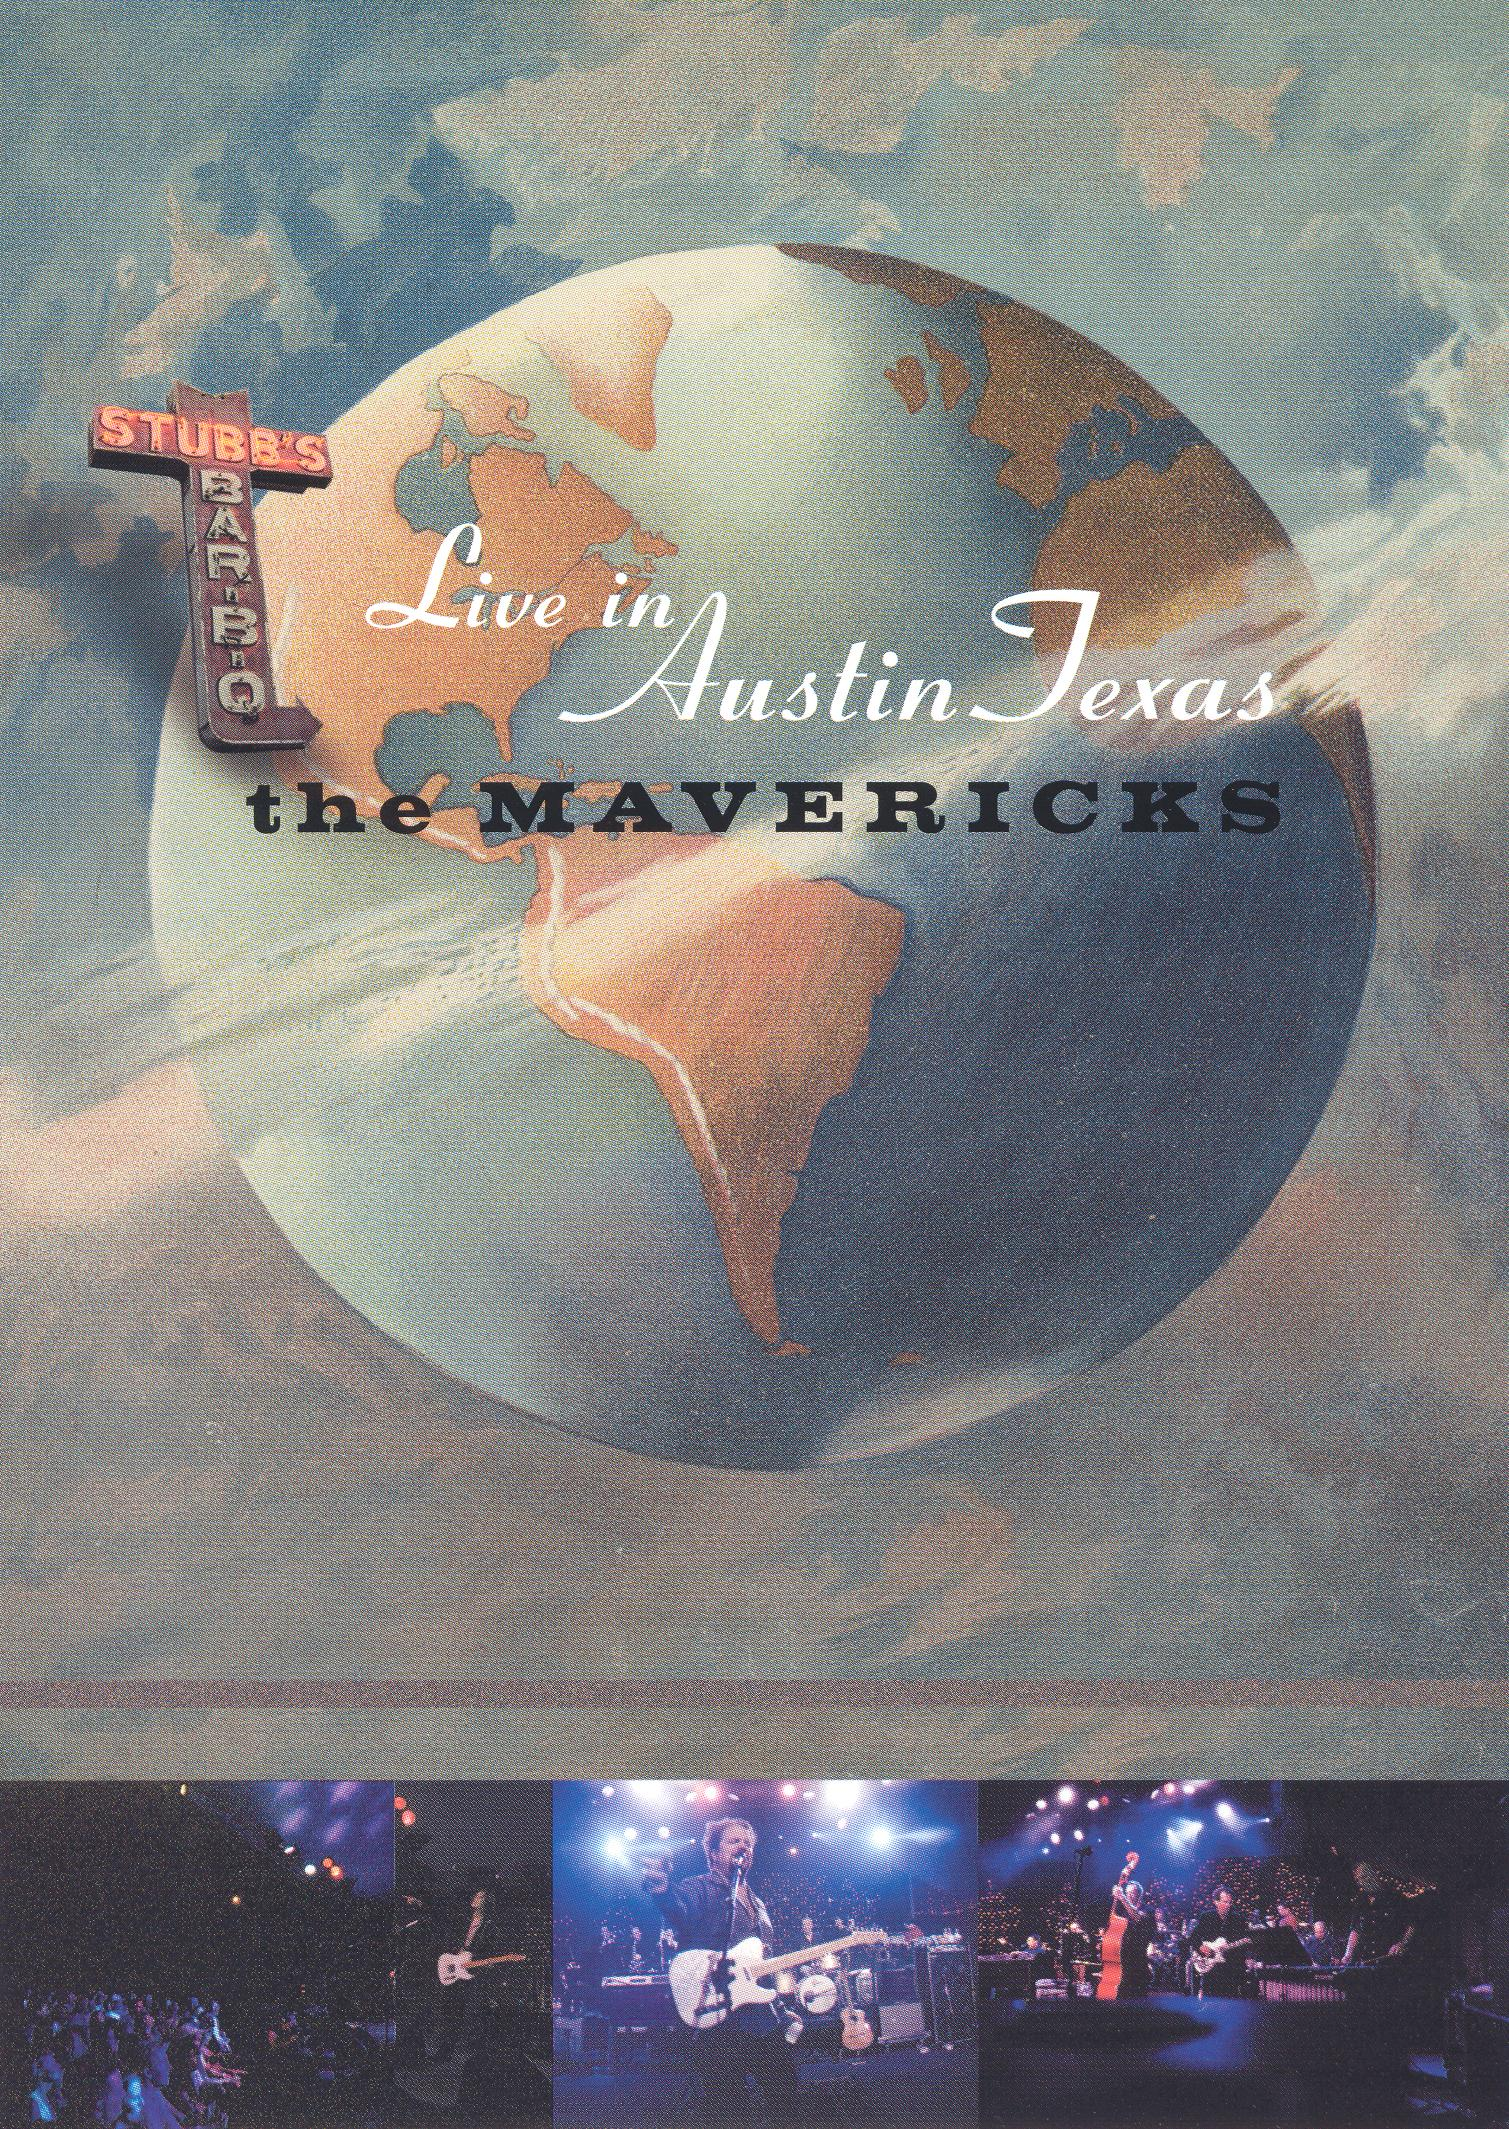 The Mavericks: Live In Austin, Texas